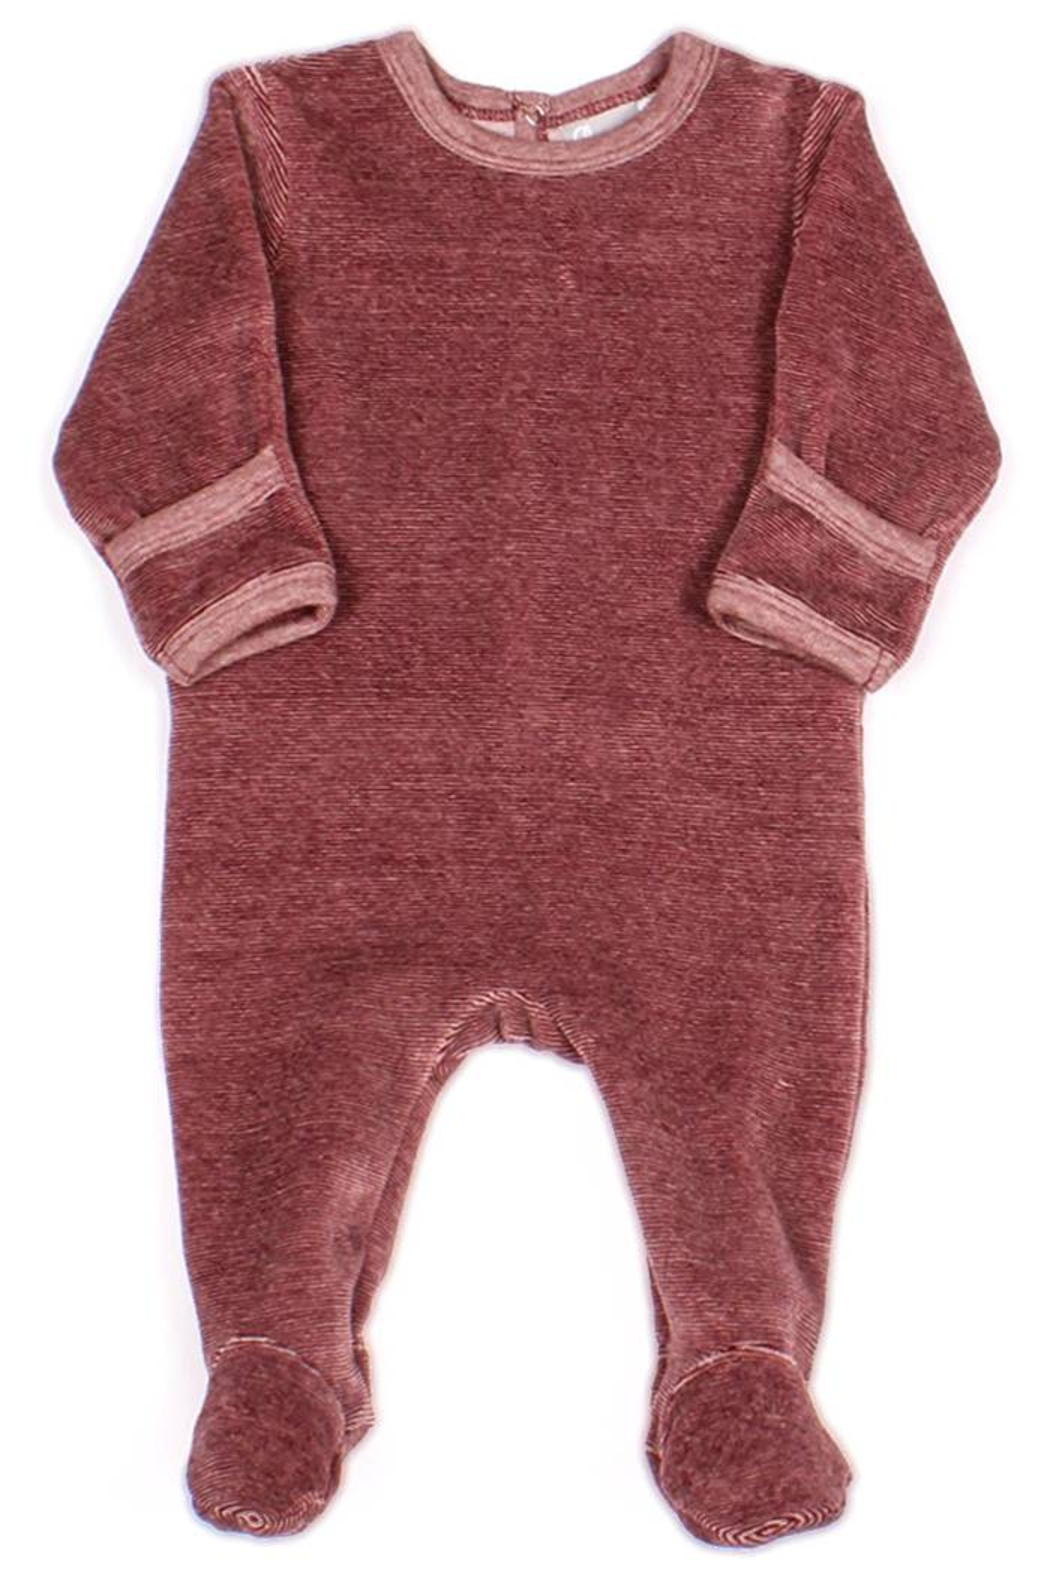 Coccoli Cotton Knitted Velour Footie Romper For New Born Baby Girls - Main Image